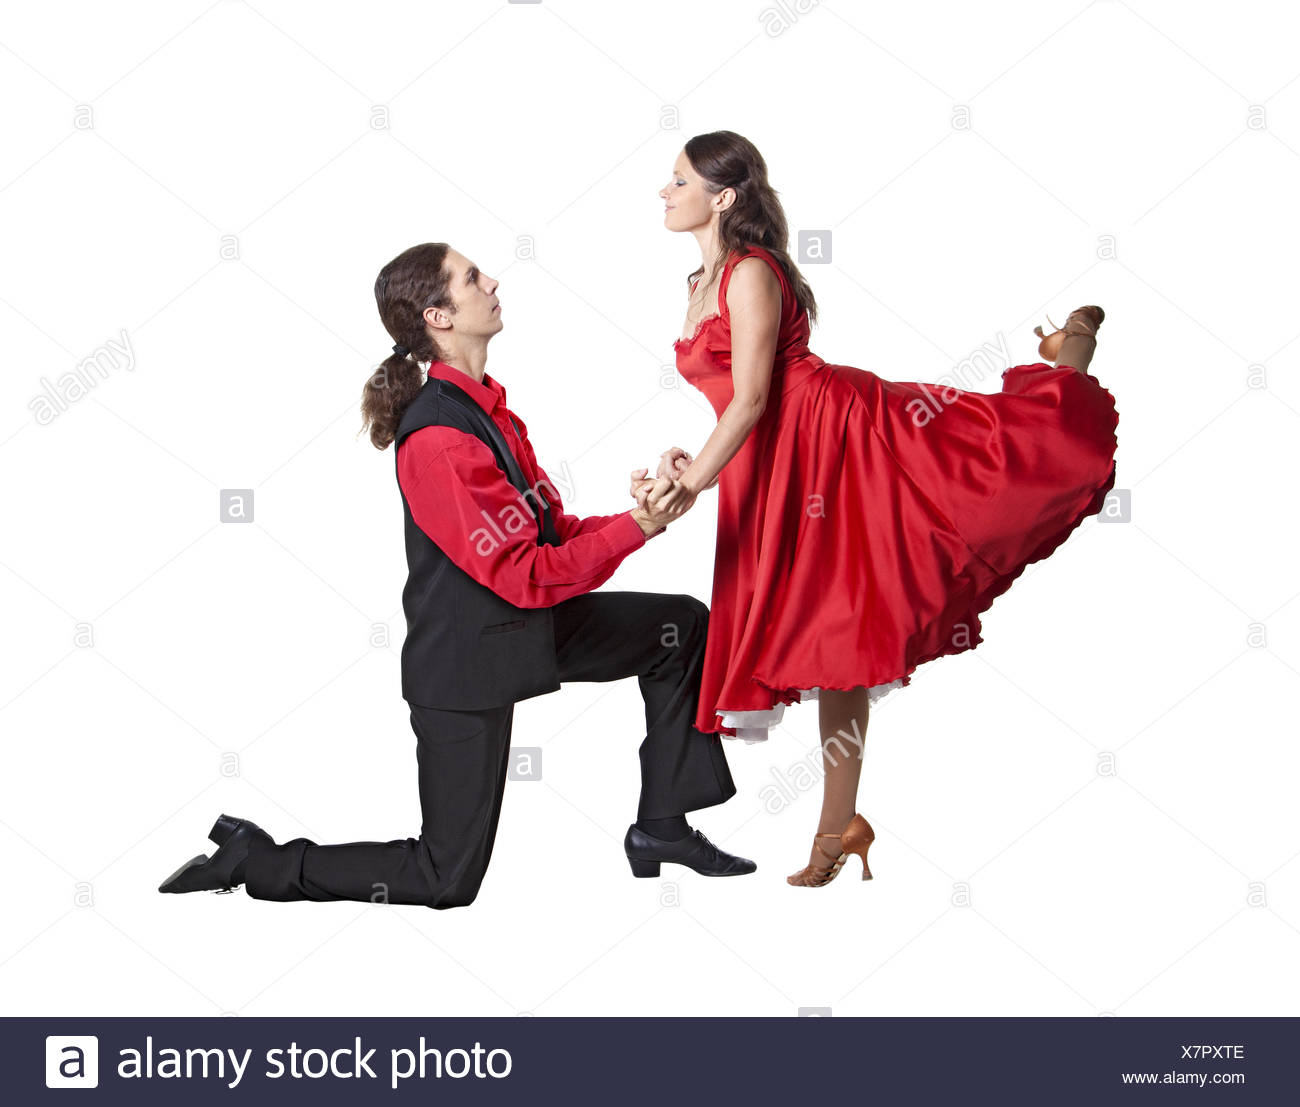 Couple in retro swing clothes isolated over white - Stock Image